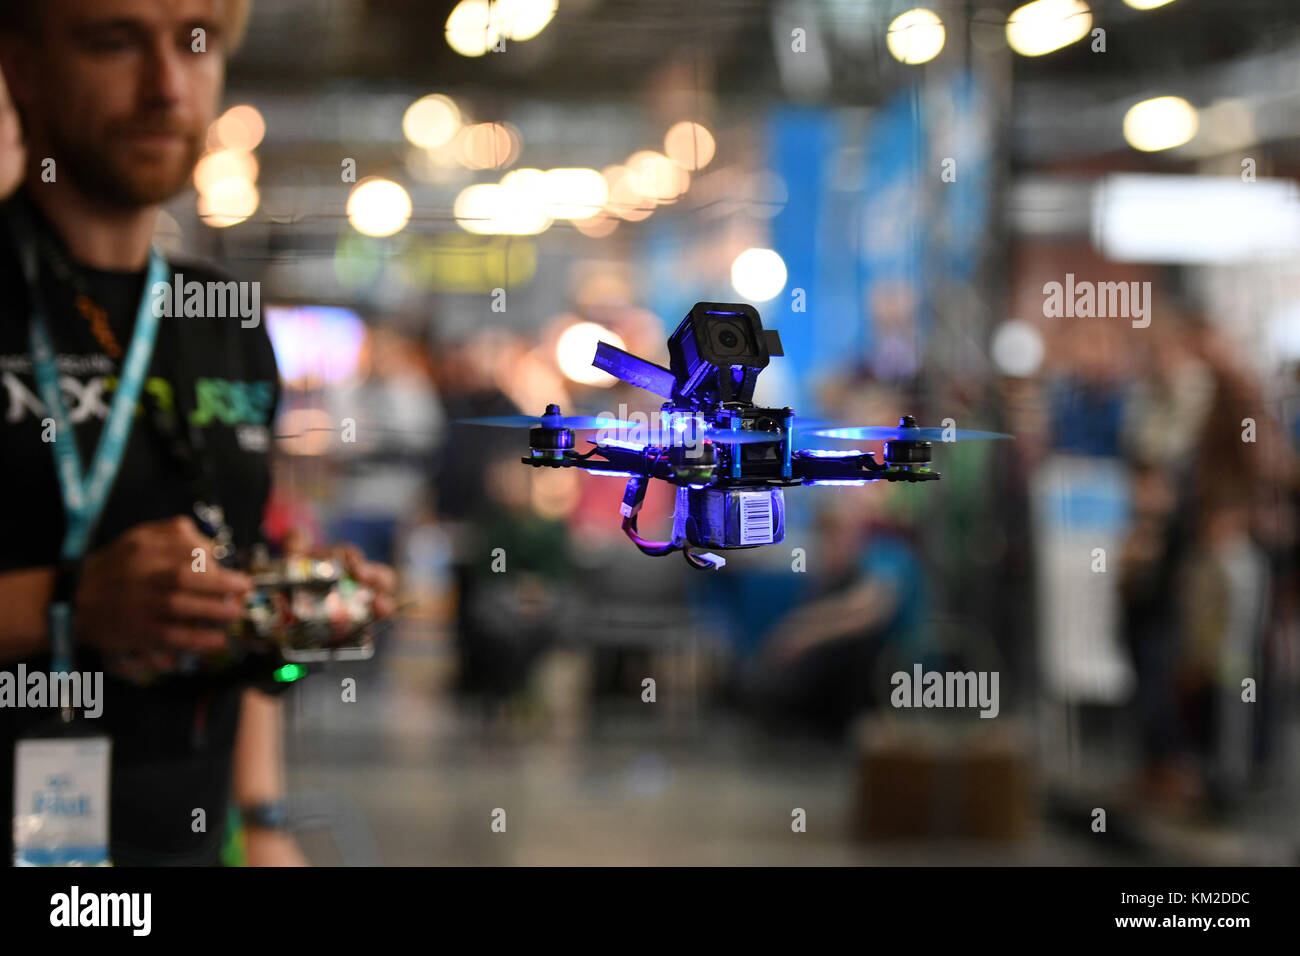 Berlin, Germany. 02nd Dec, 2017. A race drone photographed in the racetrack during the Drone Champions League (DCL) - Stock Image